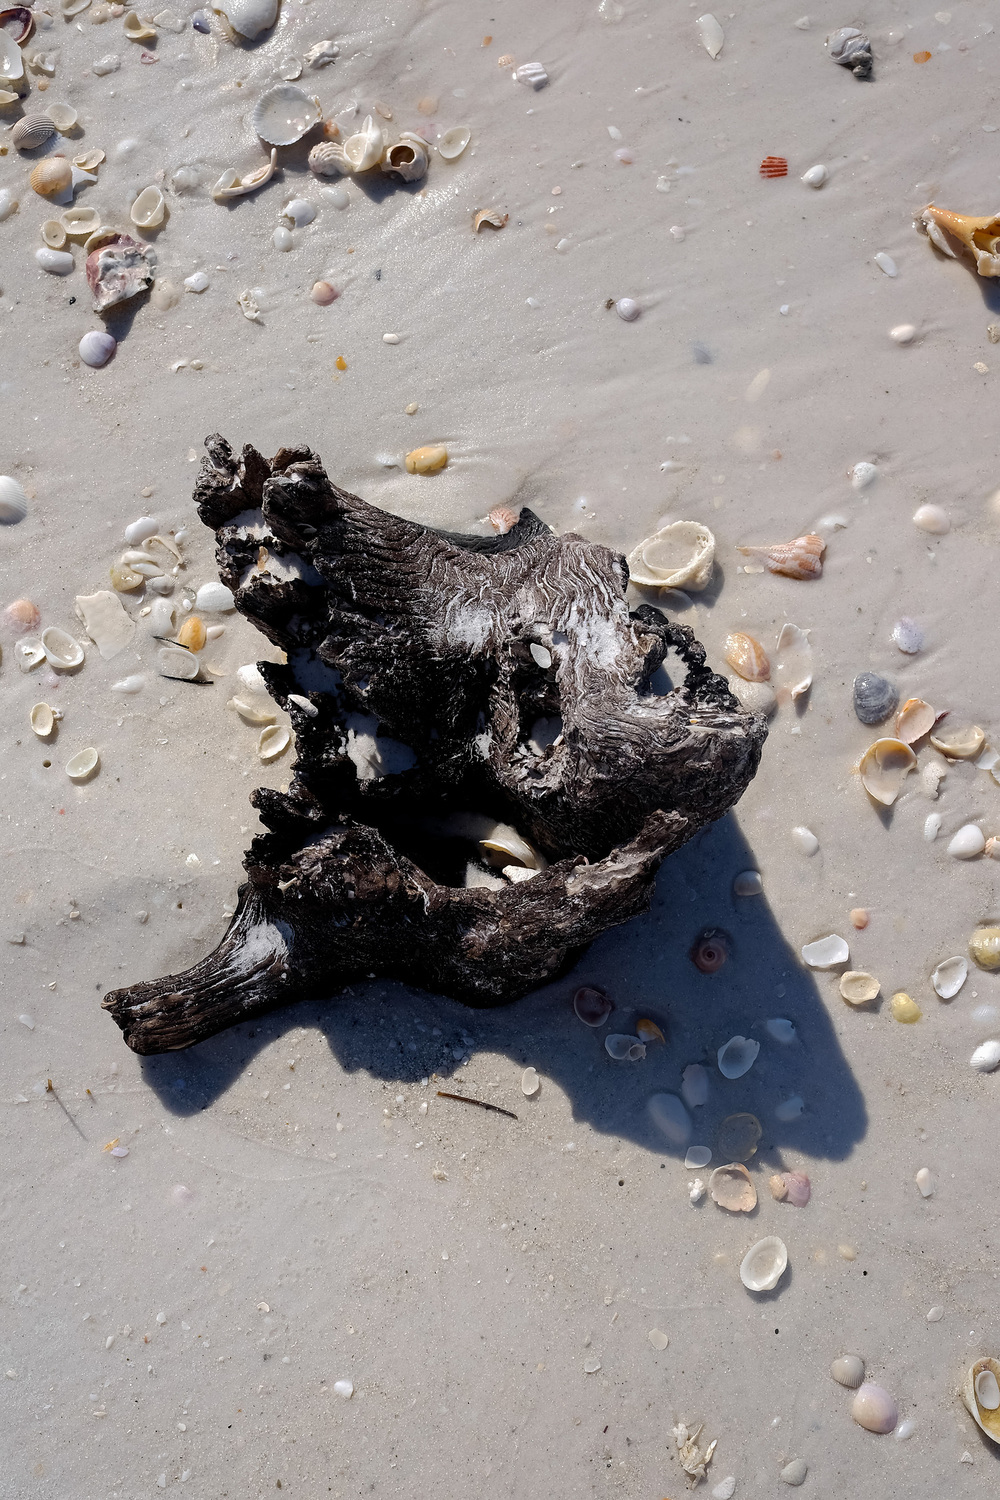 Sarasota beach, the wooden head